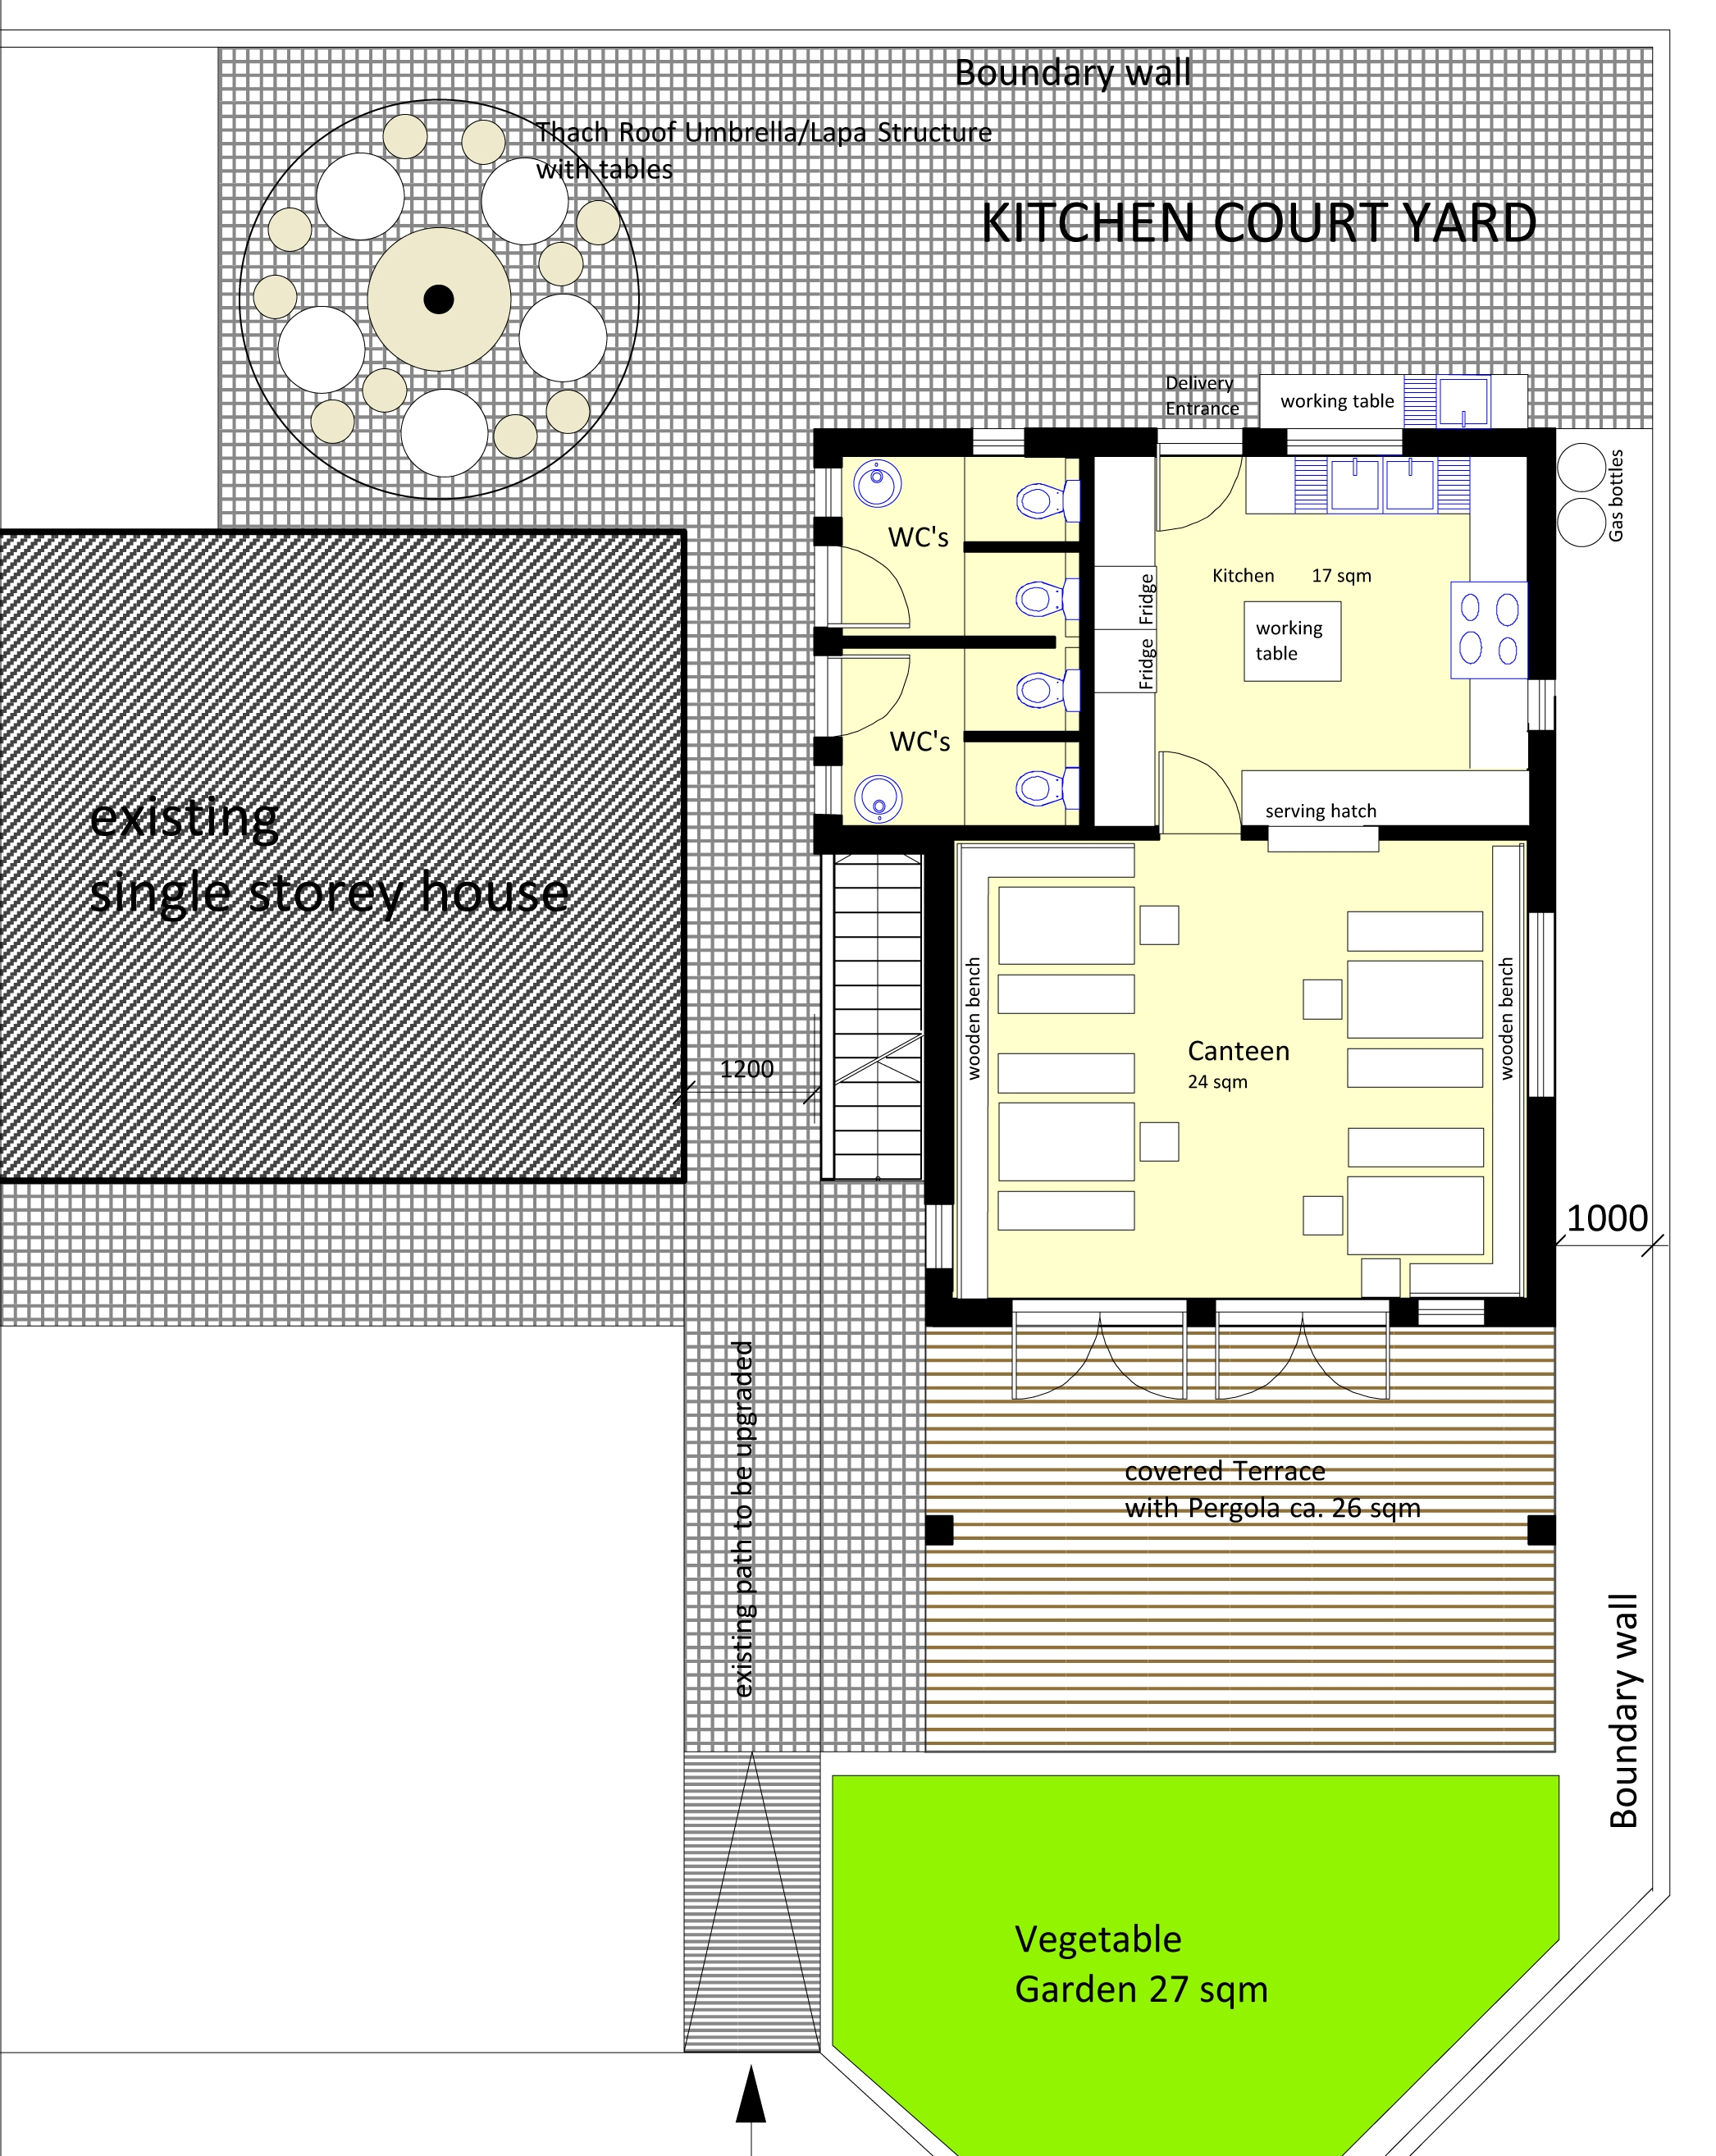 2013-04-25 PLANS with furnitures, SITE PLAN.jpg